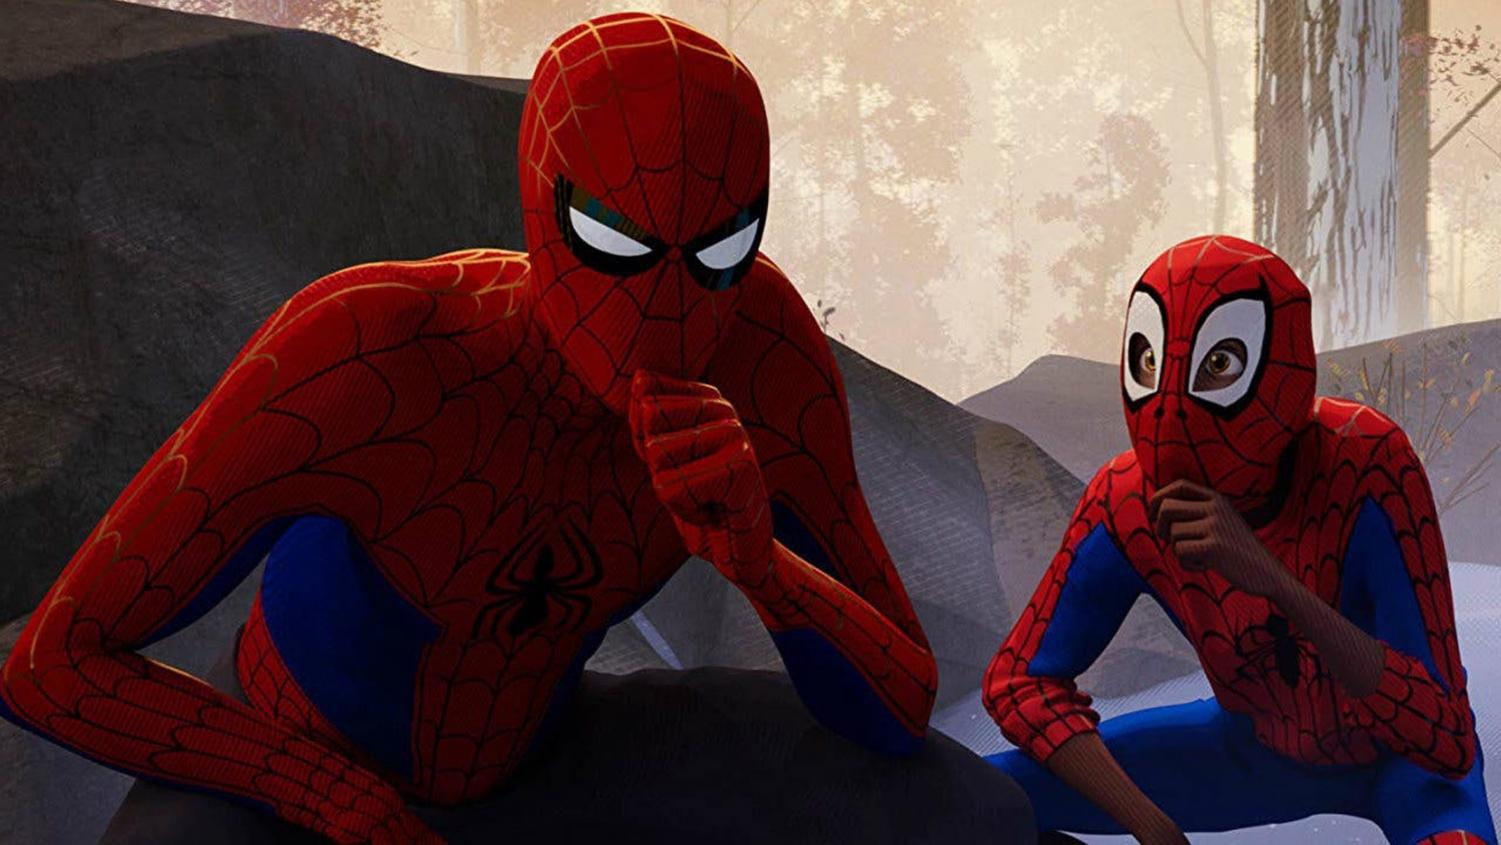 Spider-Man: Into the Spider-Verse is a new animated film by Sony Pictures taking a unique adaptation on the superhero's story.